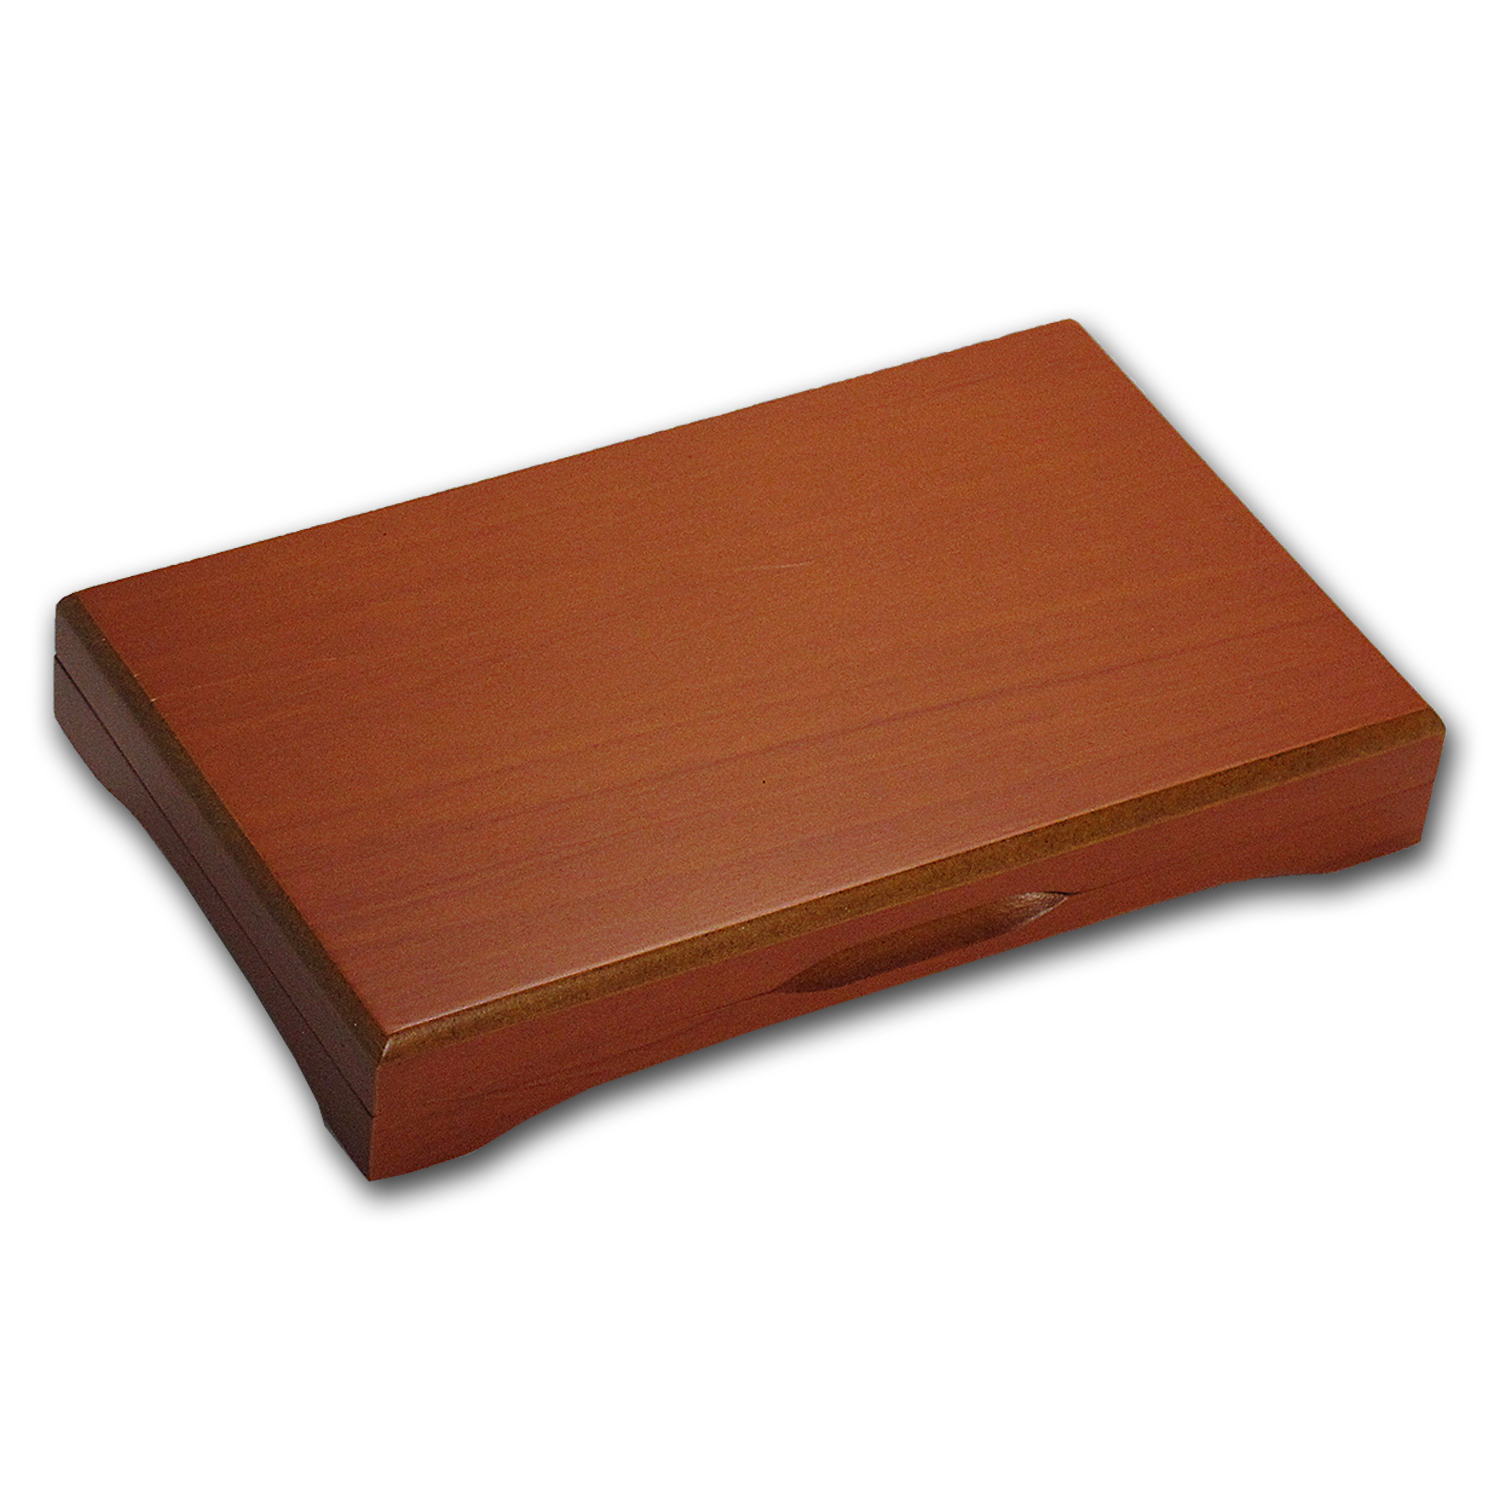 3-Coin Wood Presentation Box - Fits Up to 26 mm